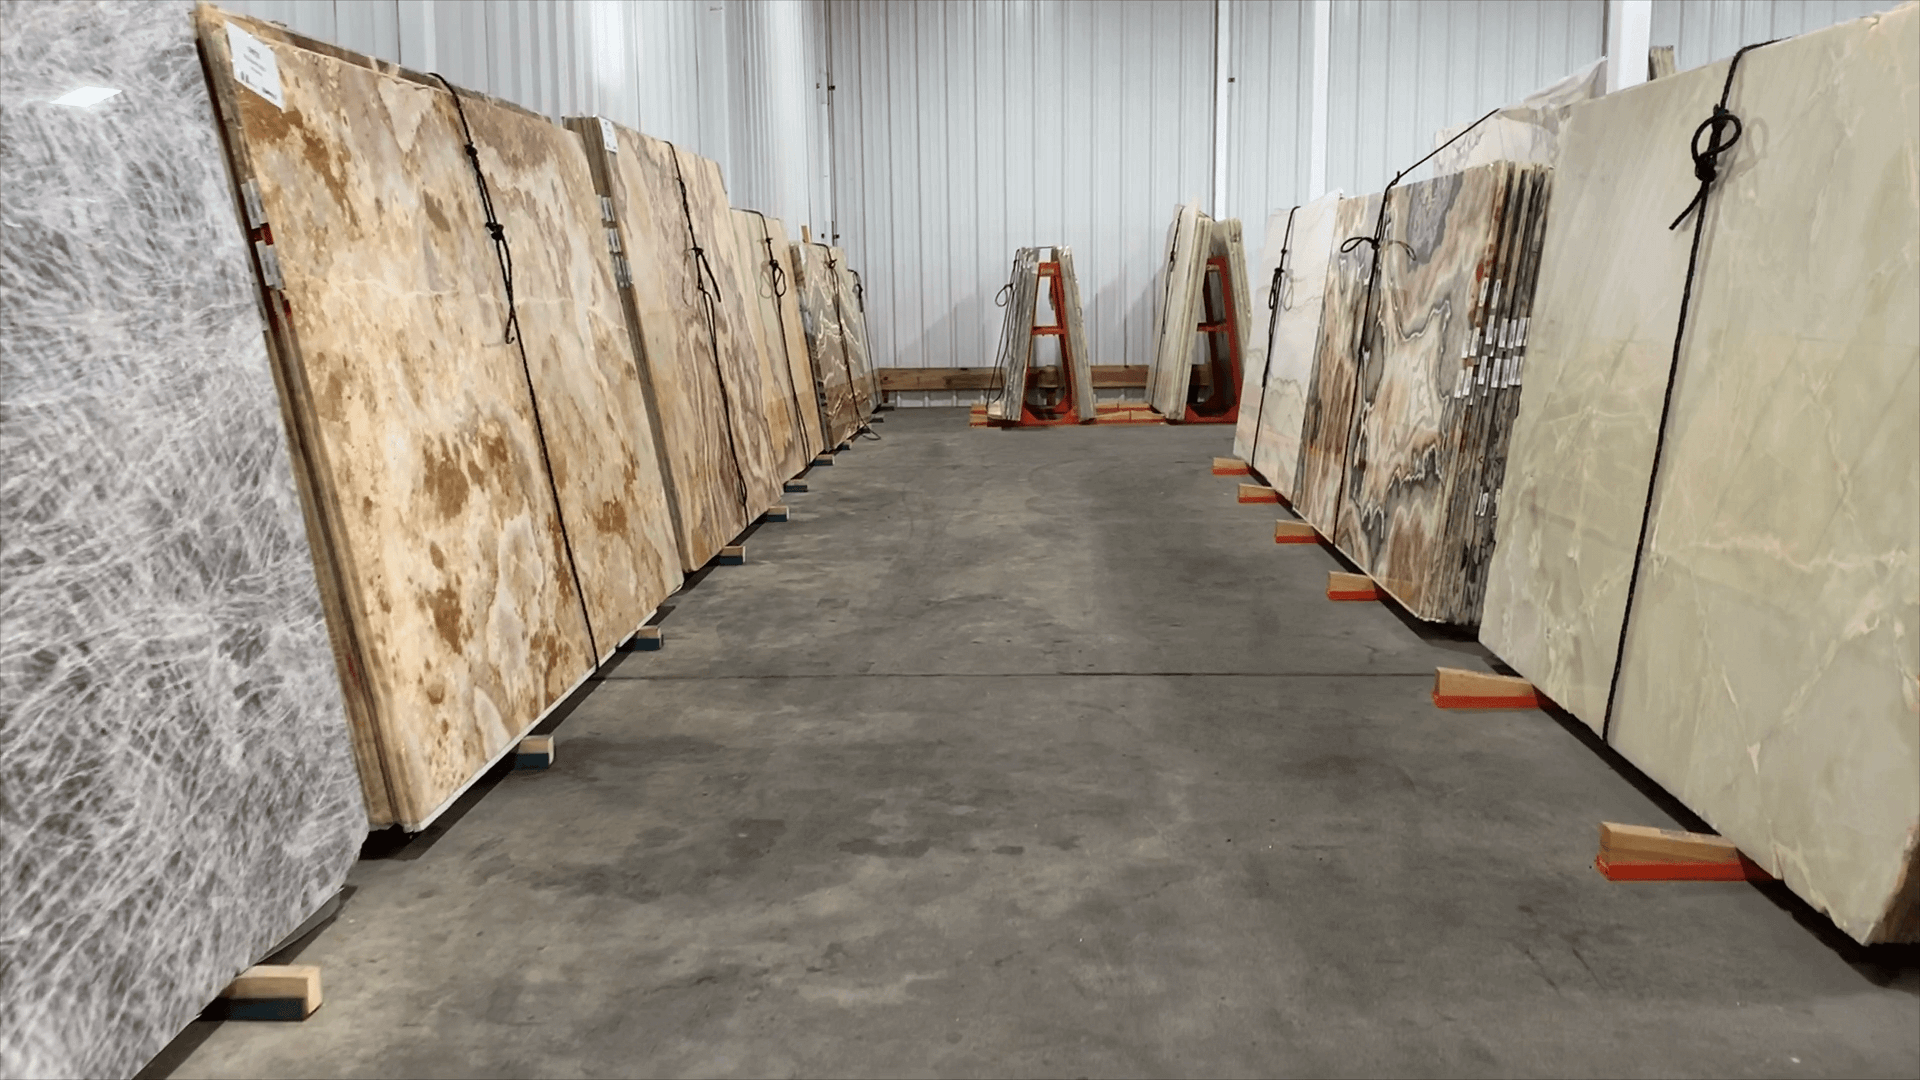 ONYX GALLERY AT STONEVILLE USA